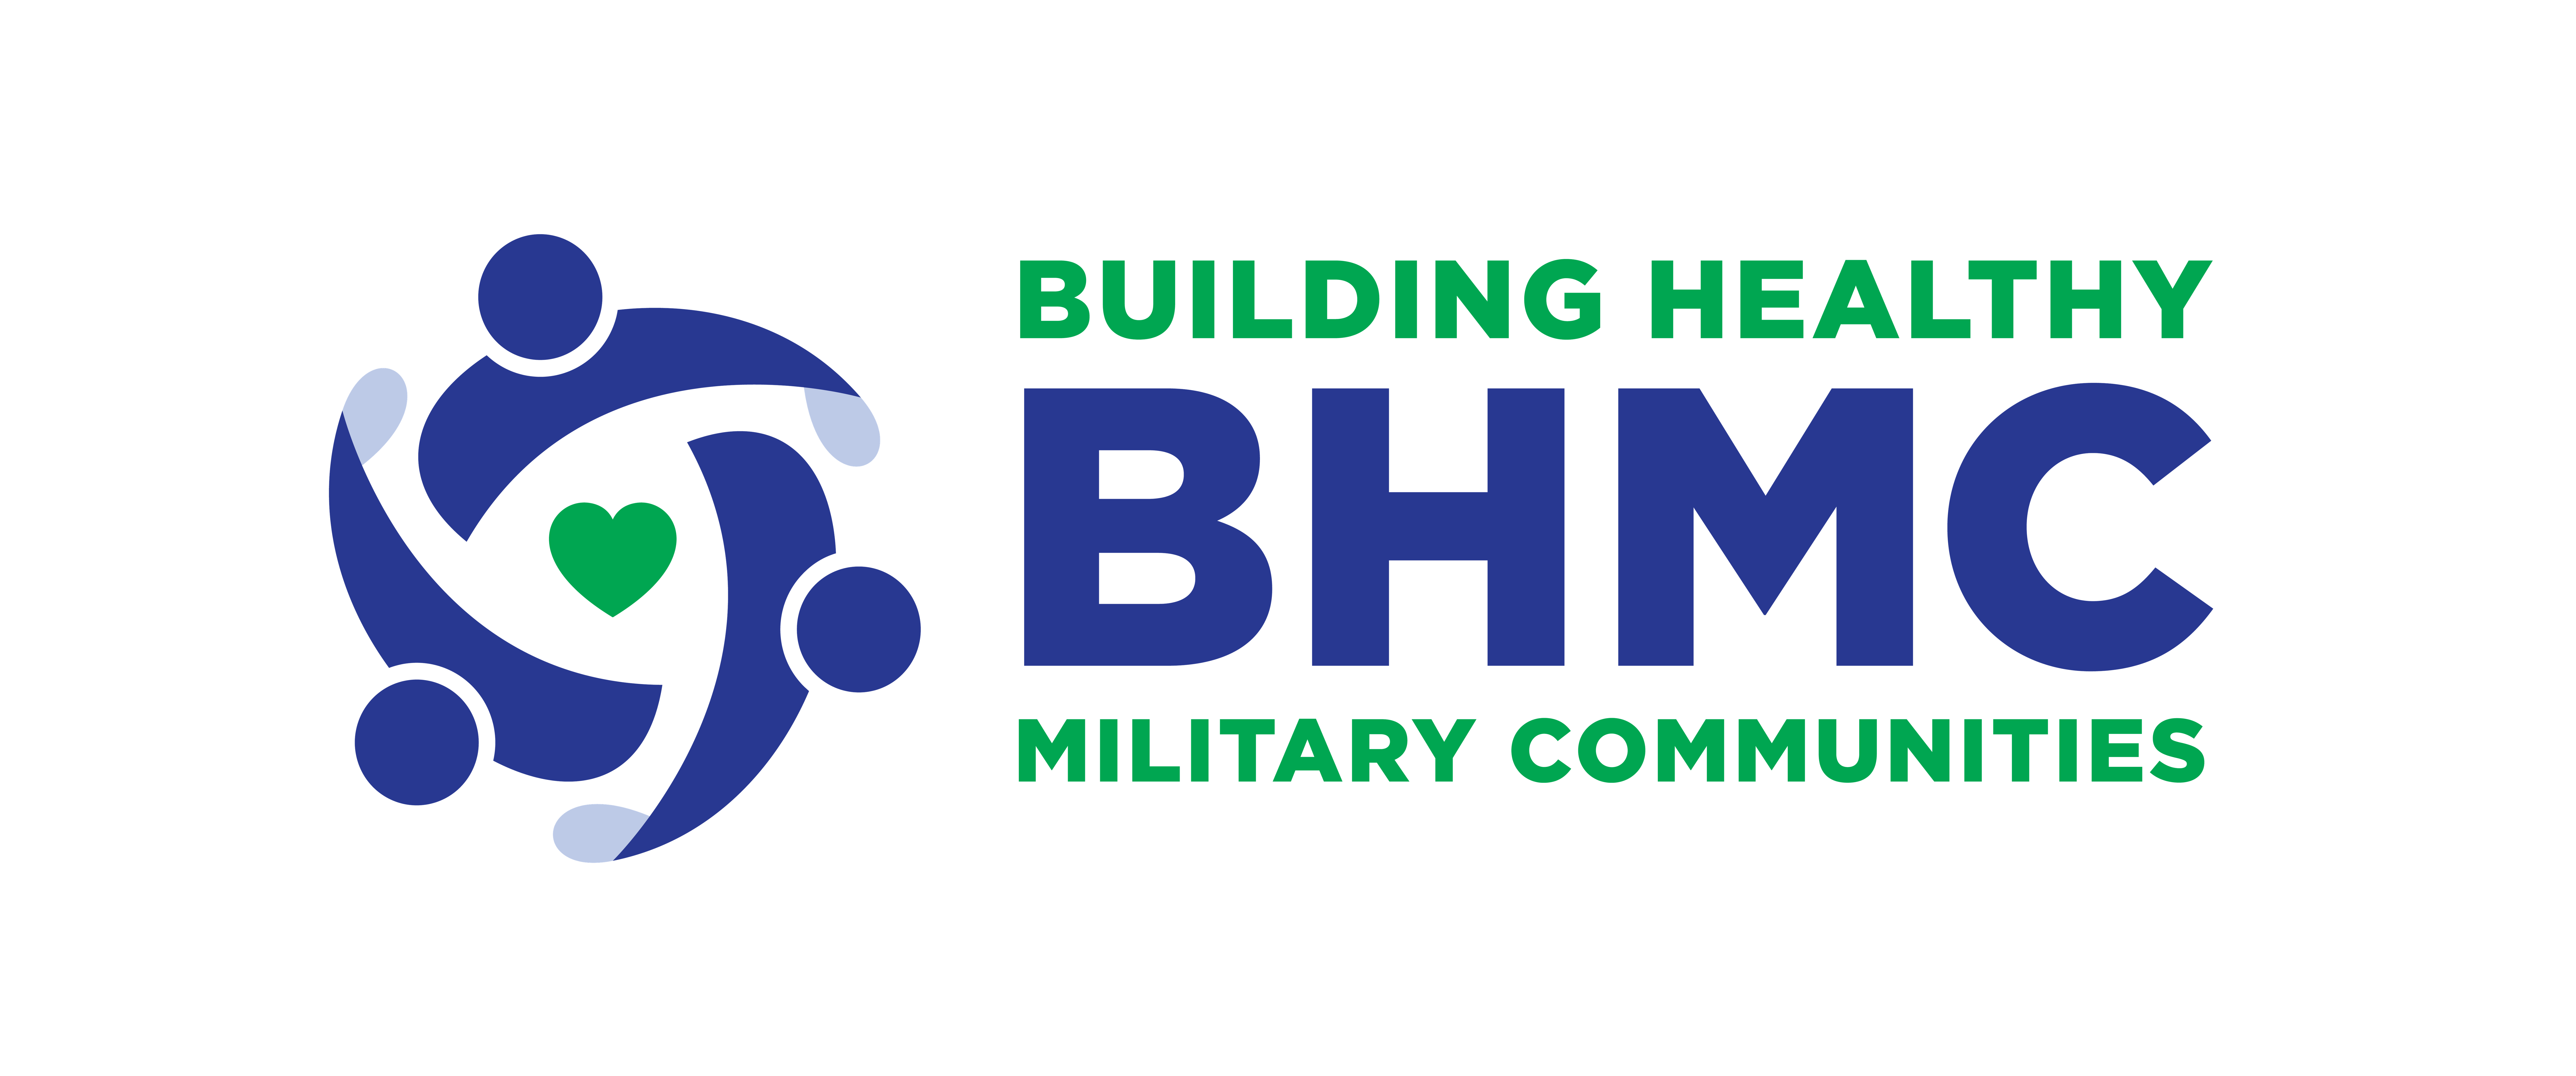 Building Health Military Communities - New Mexico